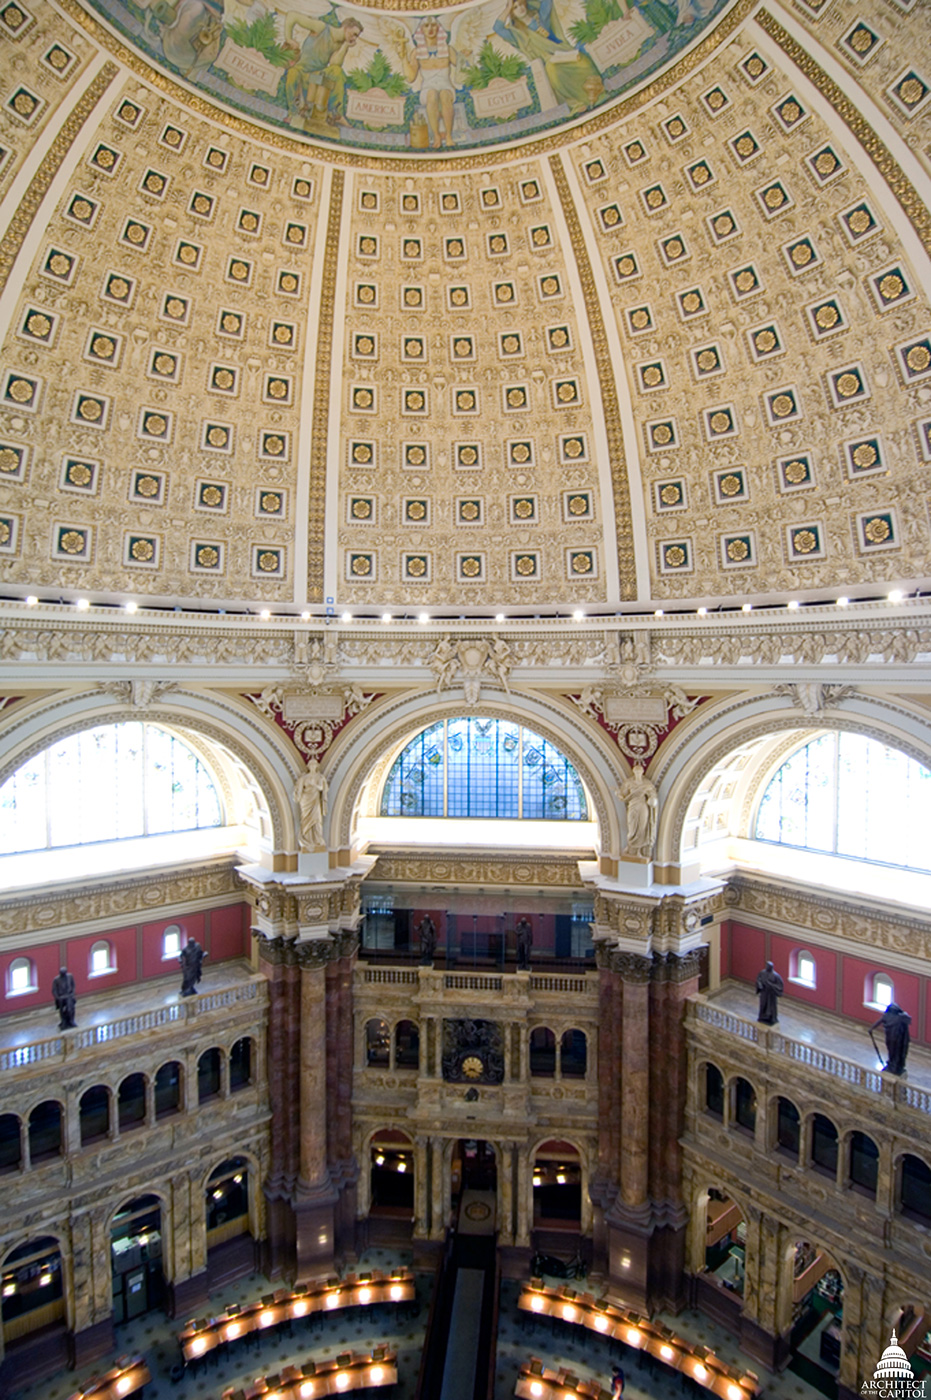 The Main Reading Room of the Library of Congress Thomas Jefferson Building.